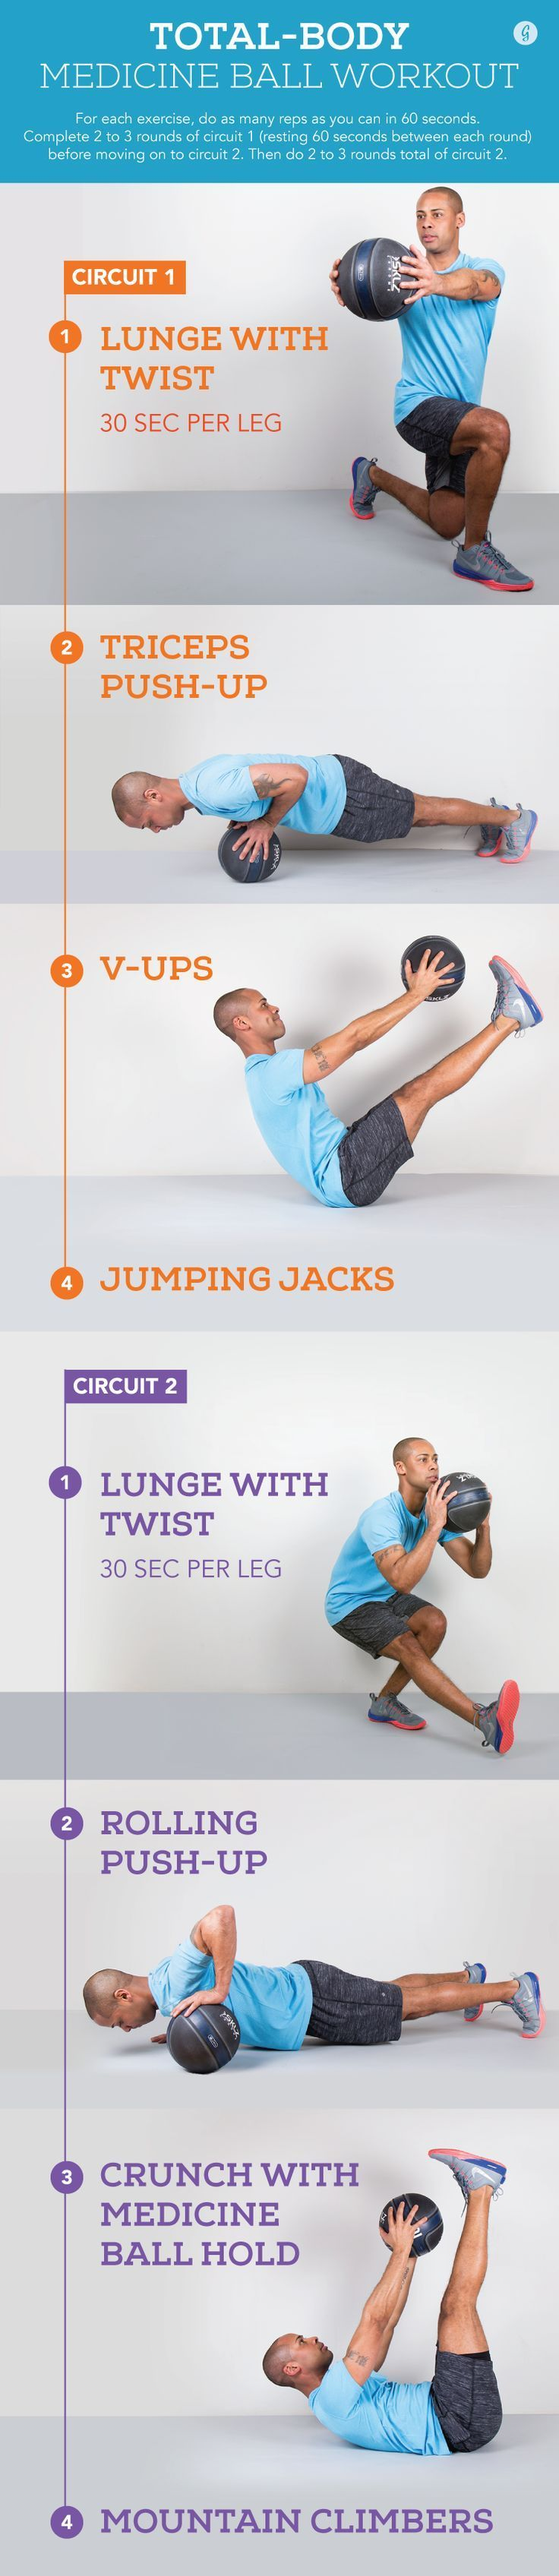 Total-Body Medicine Ball Workout  #workout #totalbody #exercises